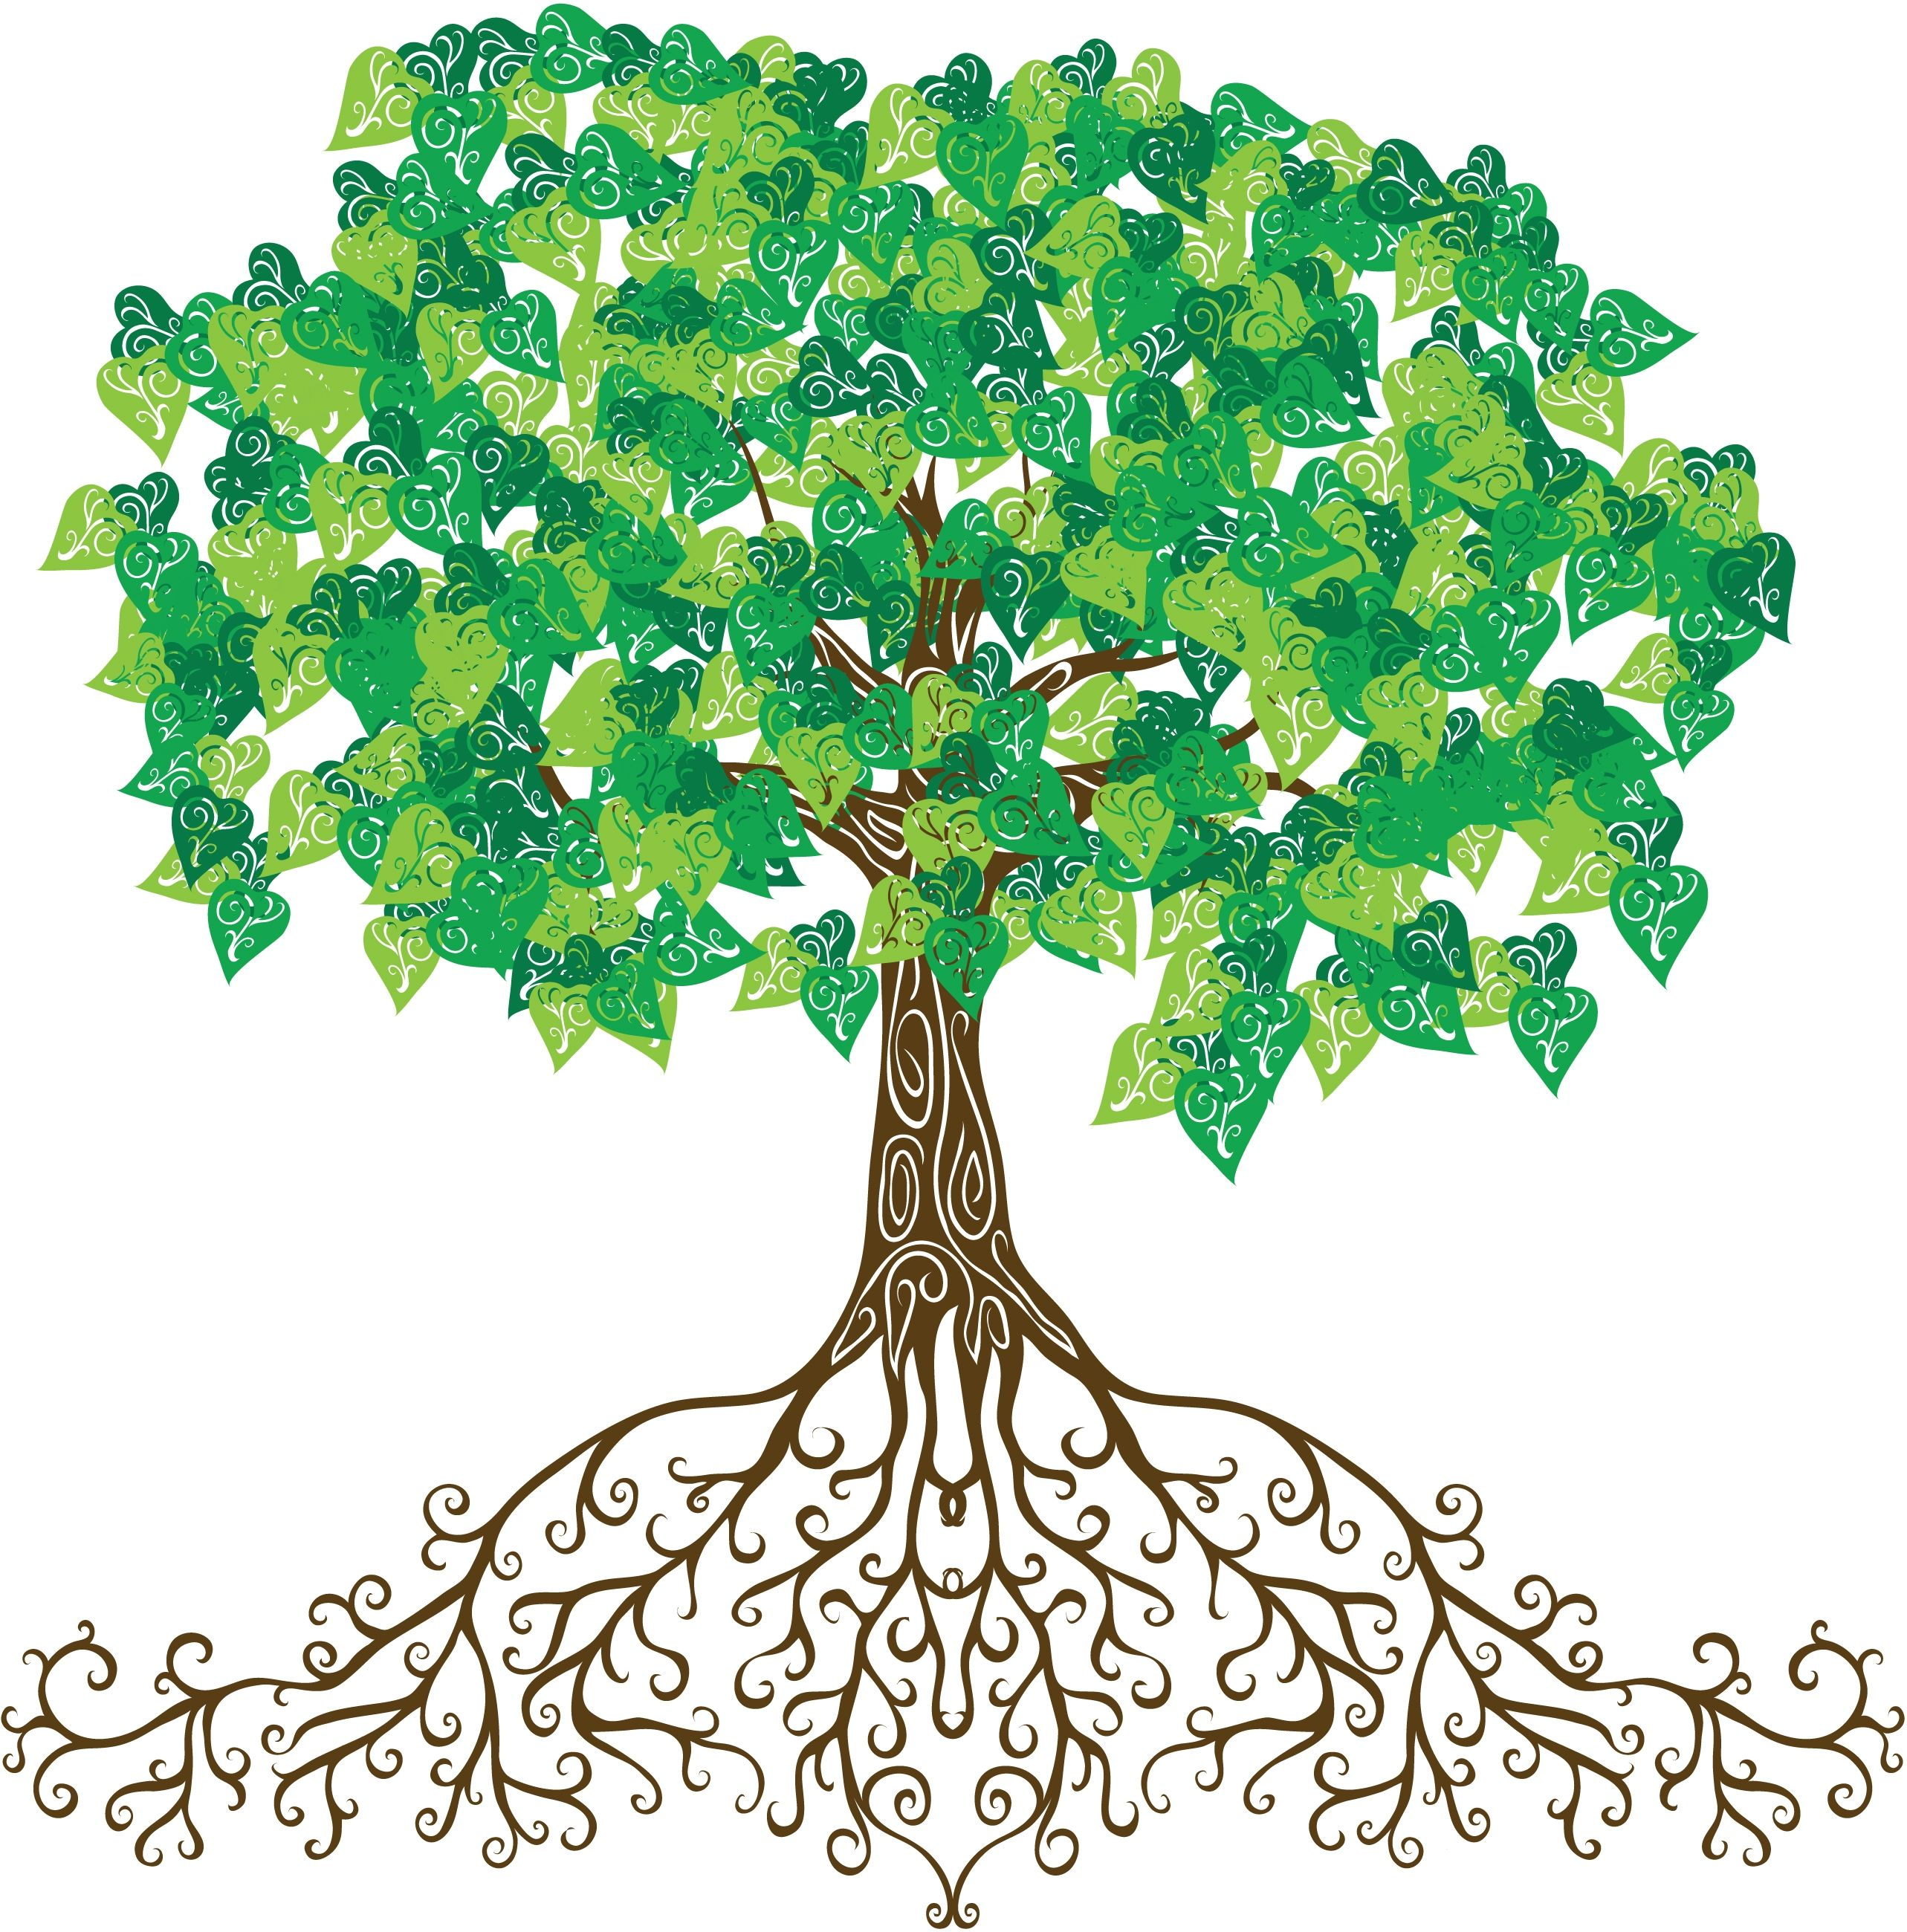 Roots clipart rooted tree. When i sing imagine